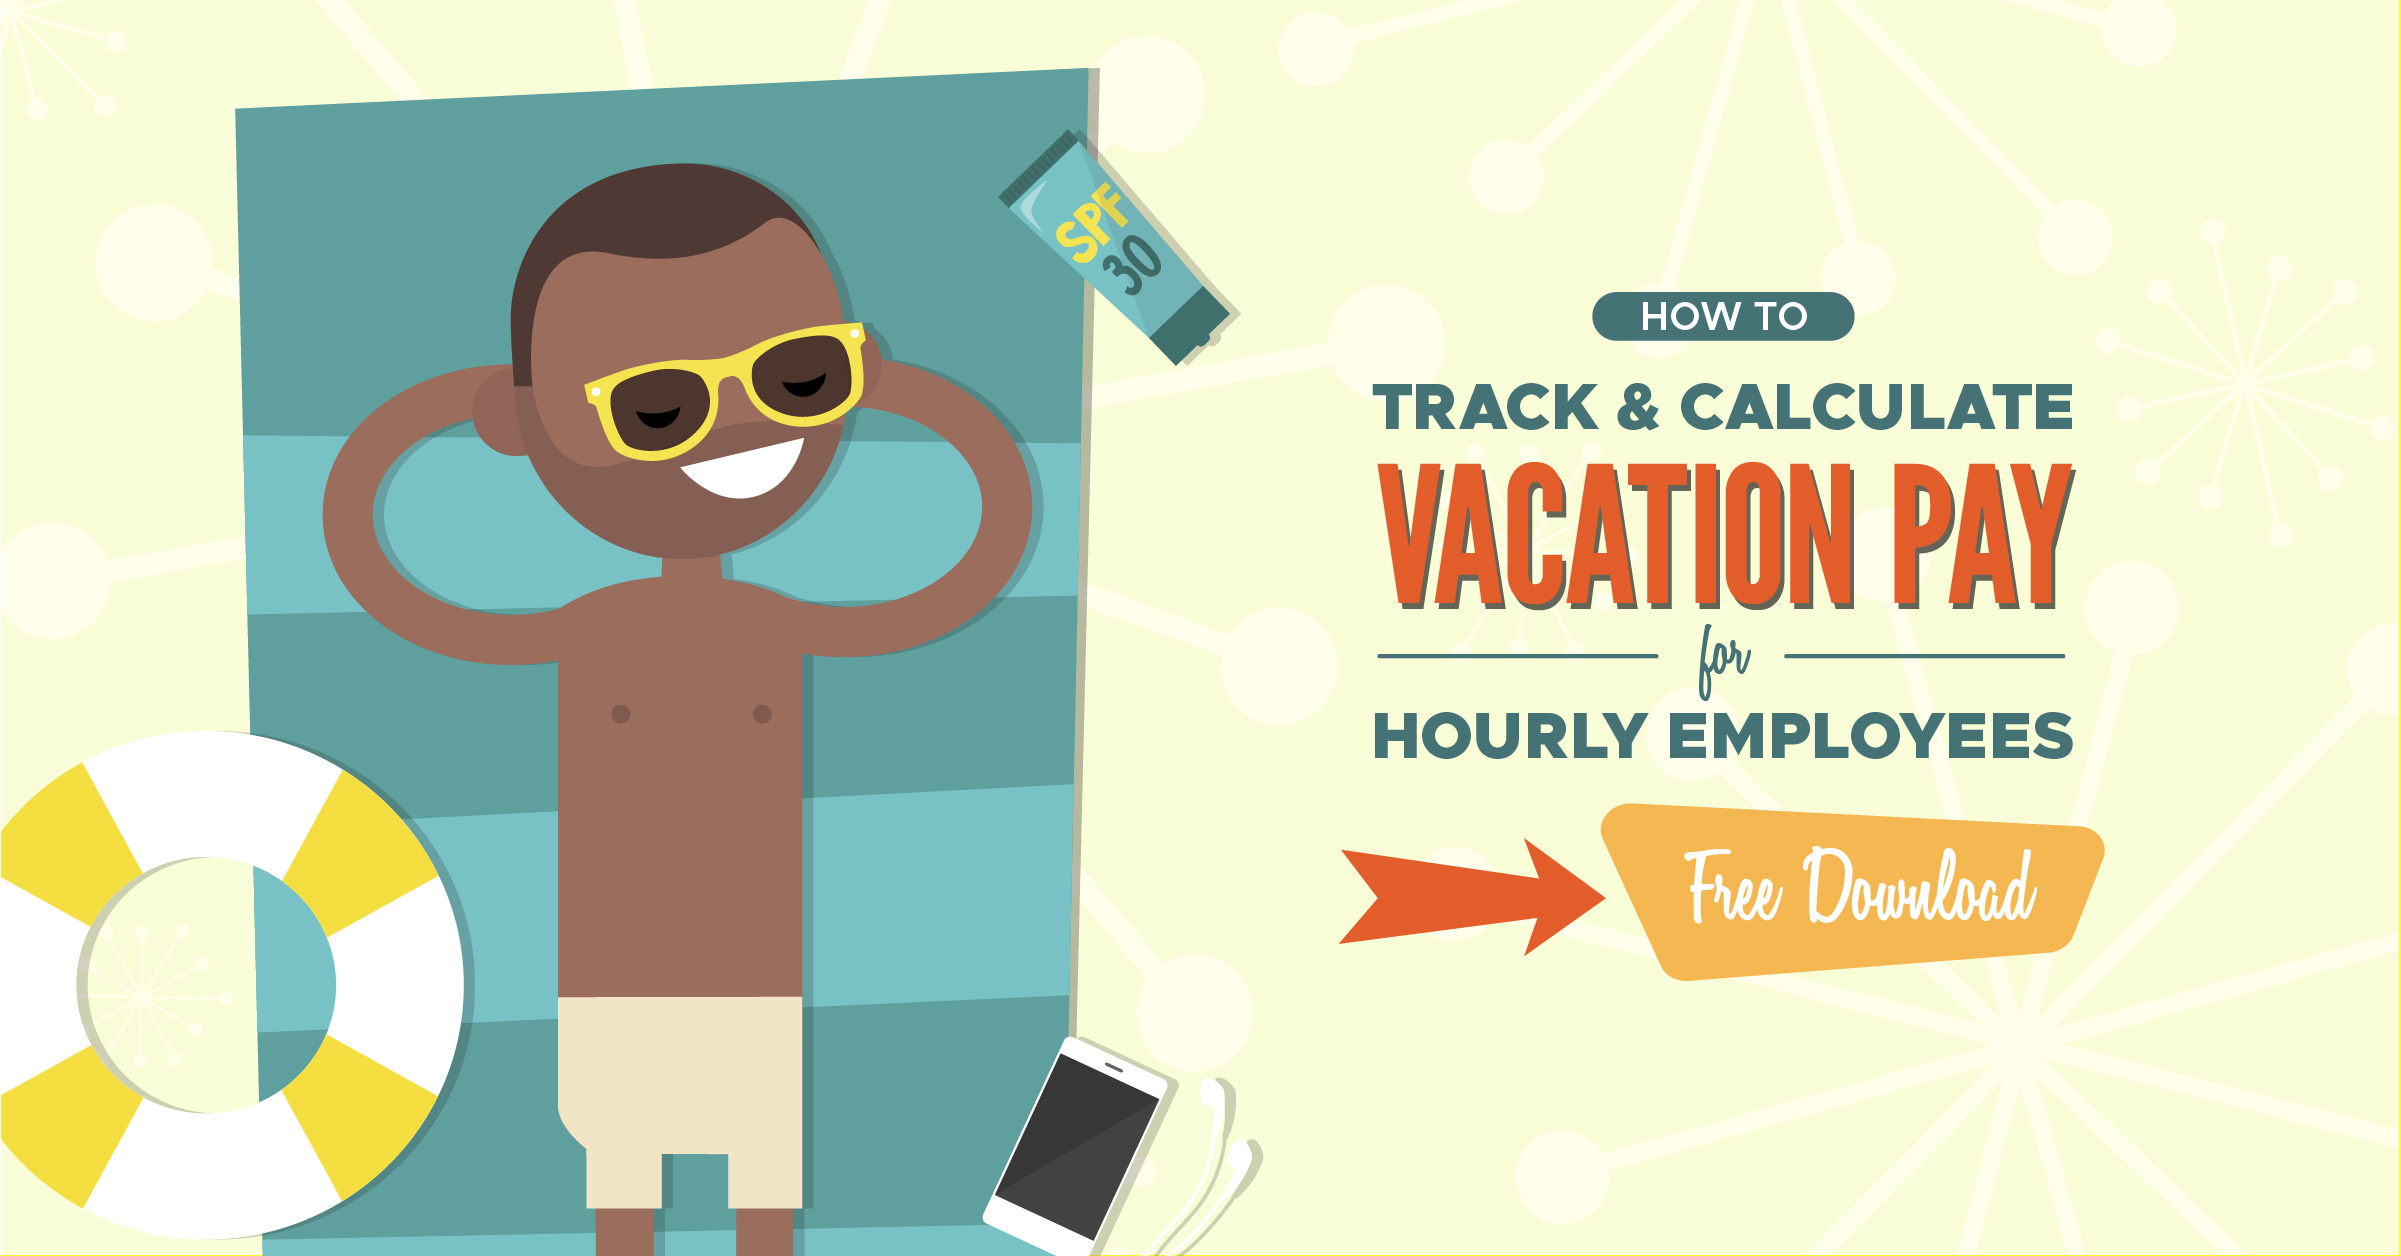 How to Calculate Vacation Pay for Hourly Employees - When I Work